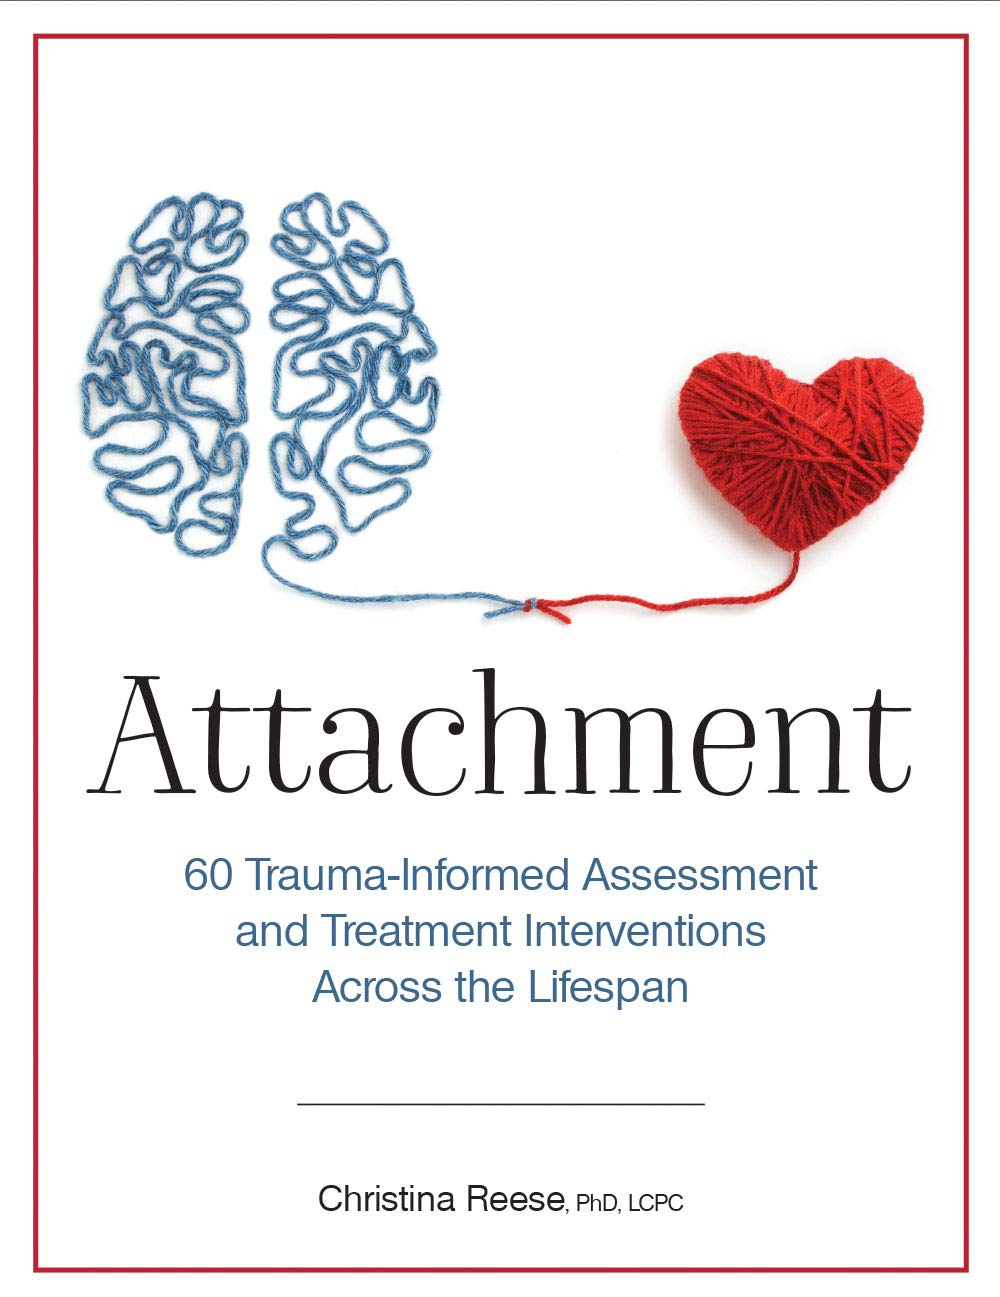 Attachment Trauma Informed Assessment Treatment Interventions